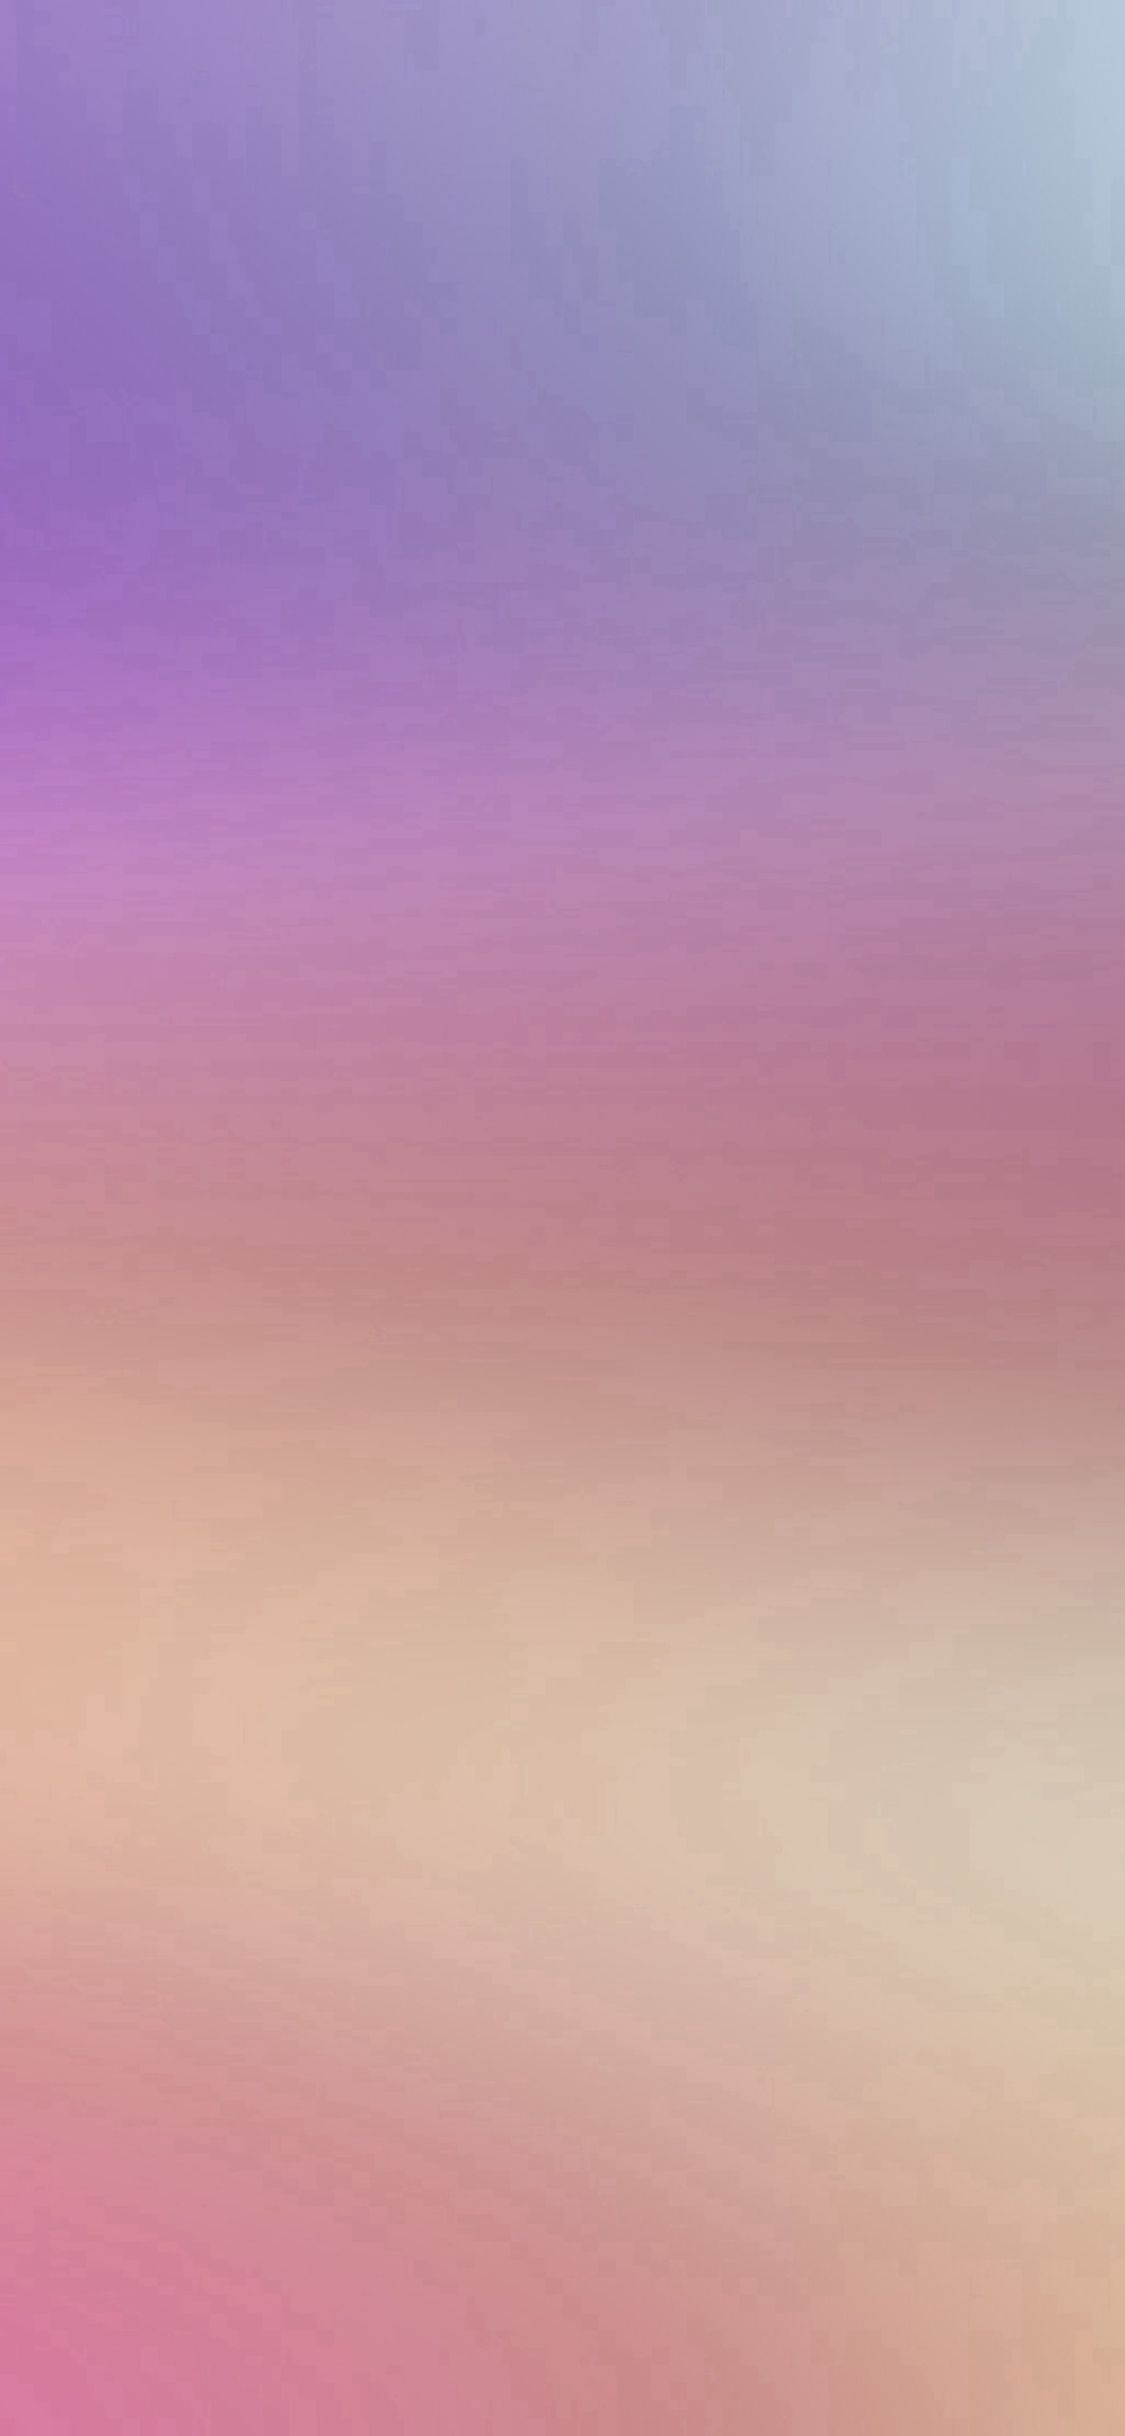 Abstract Purple Pink Blur Gradation Iphone X Wallpaper In